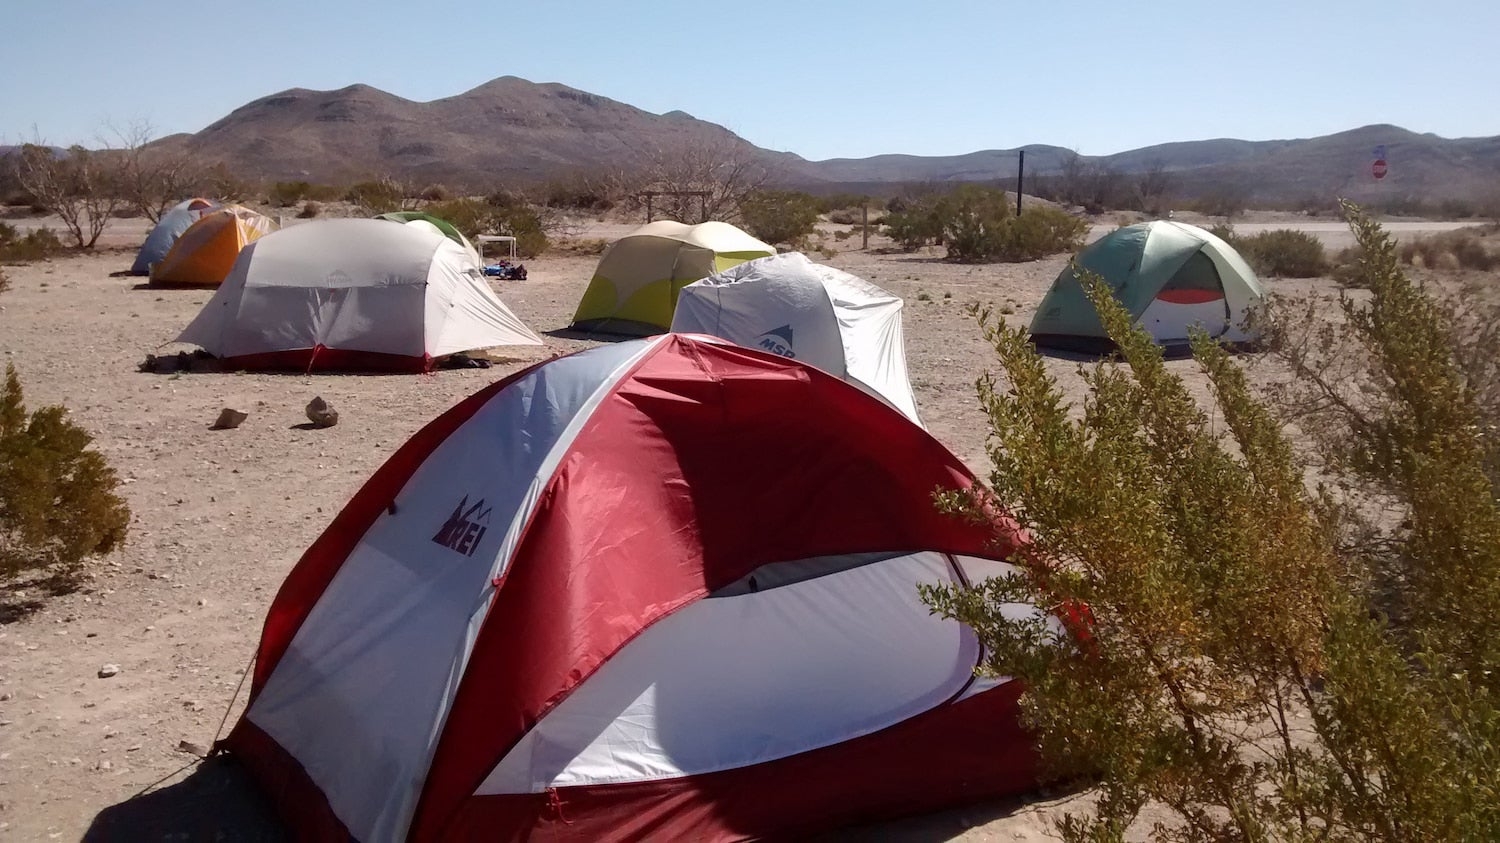 a bunch of tents on the ground